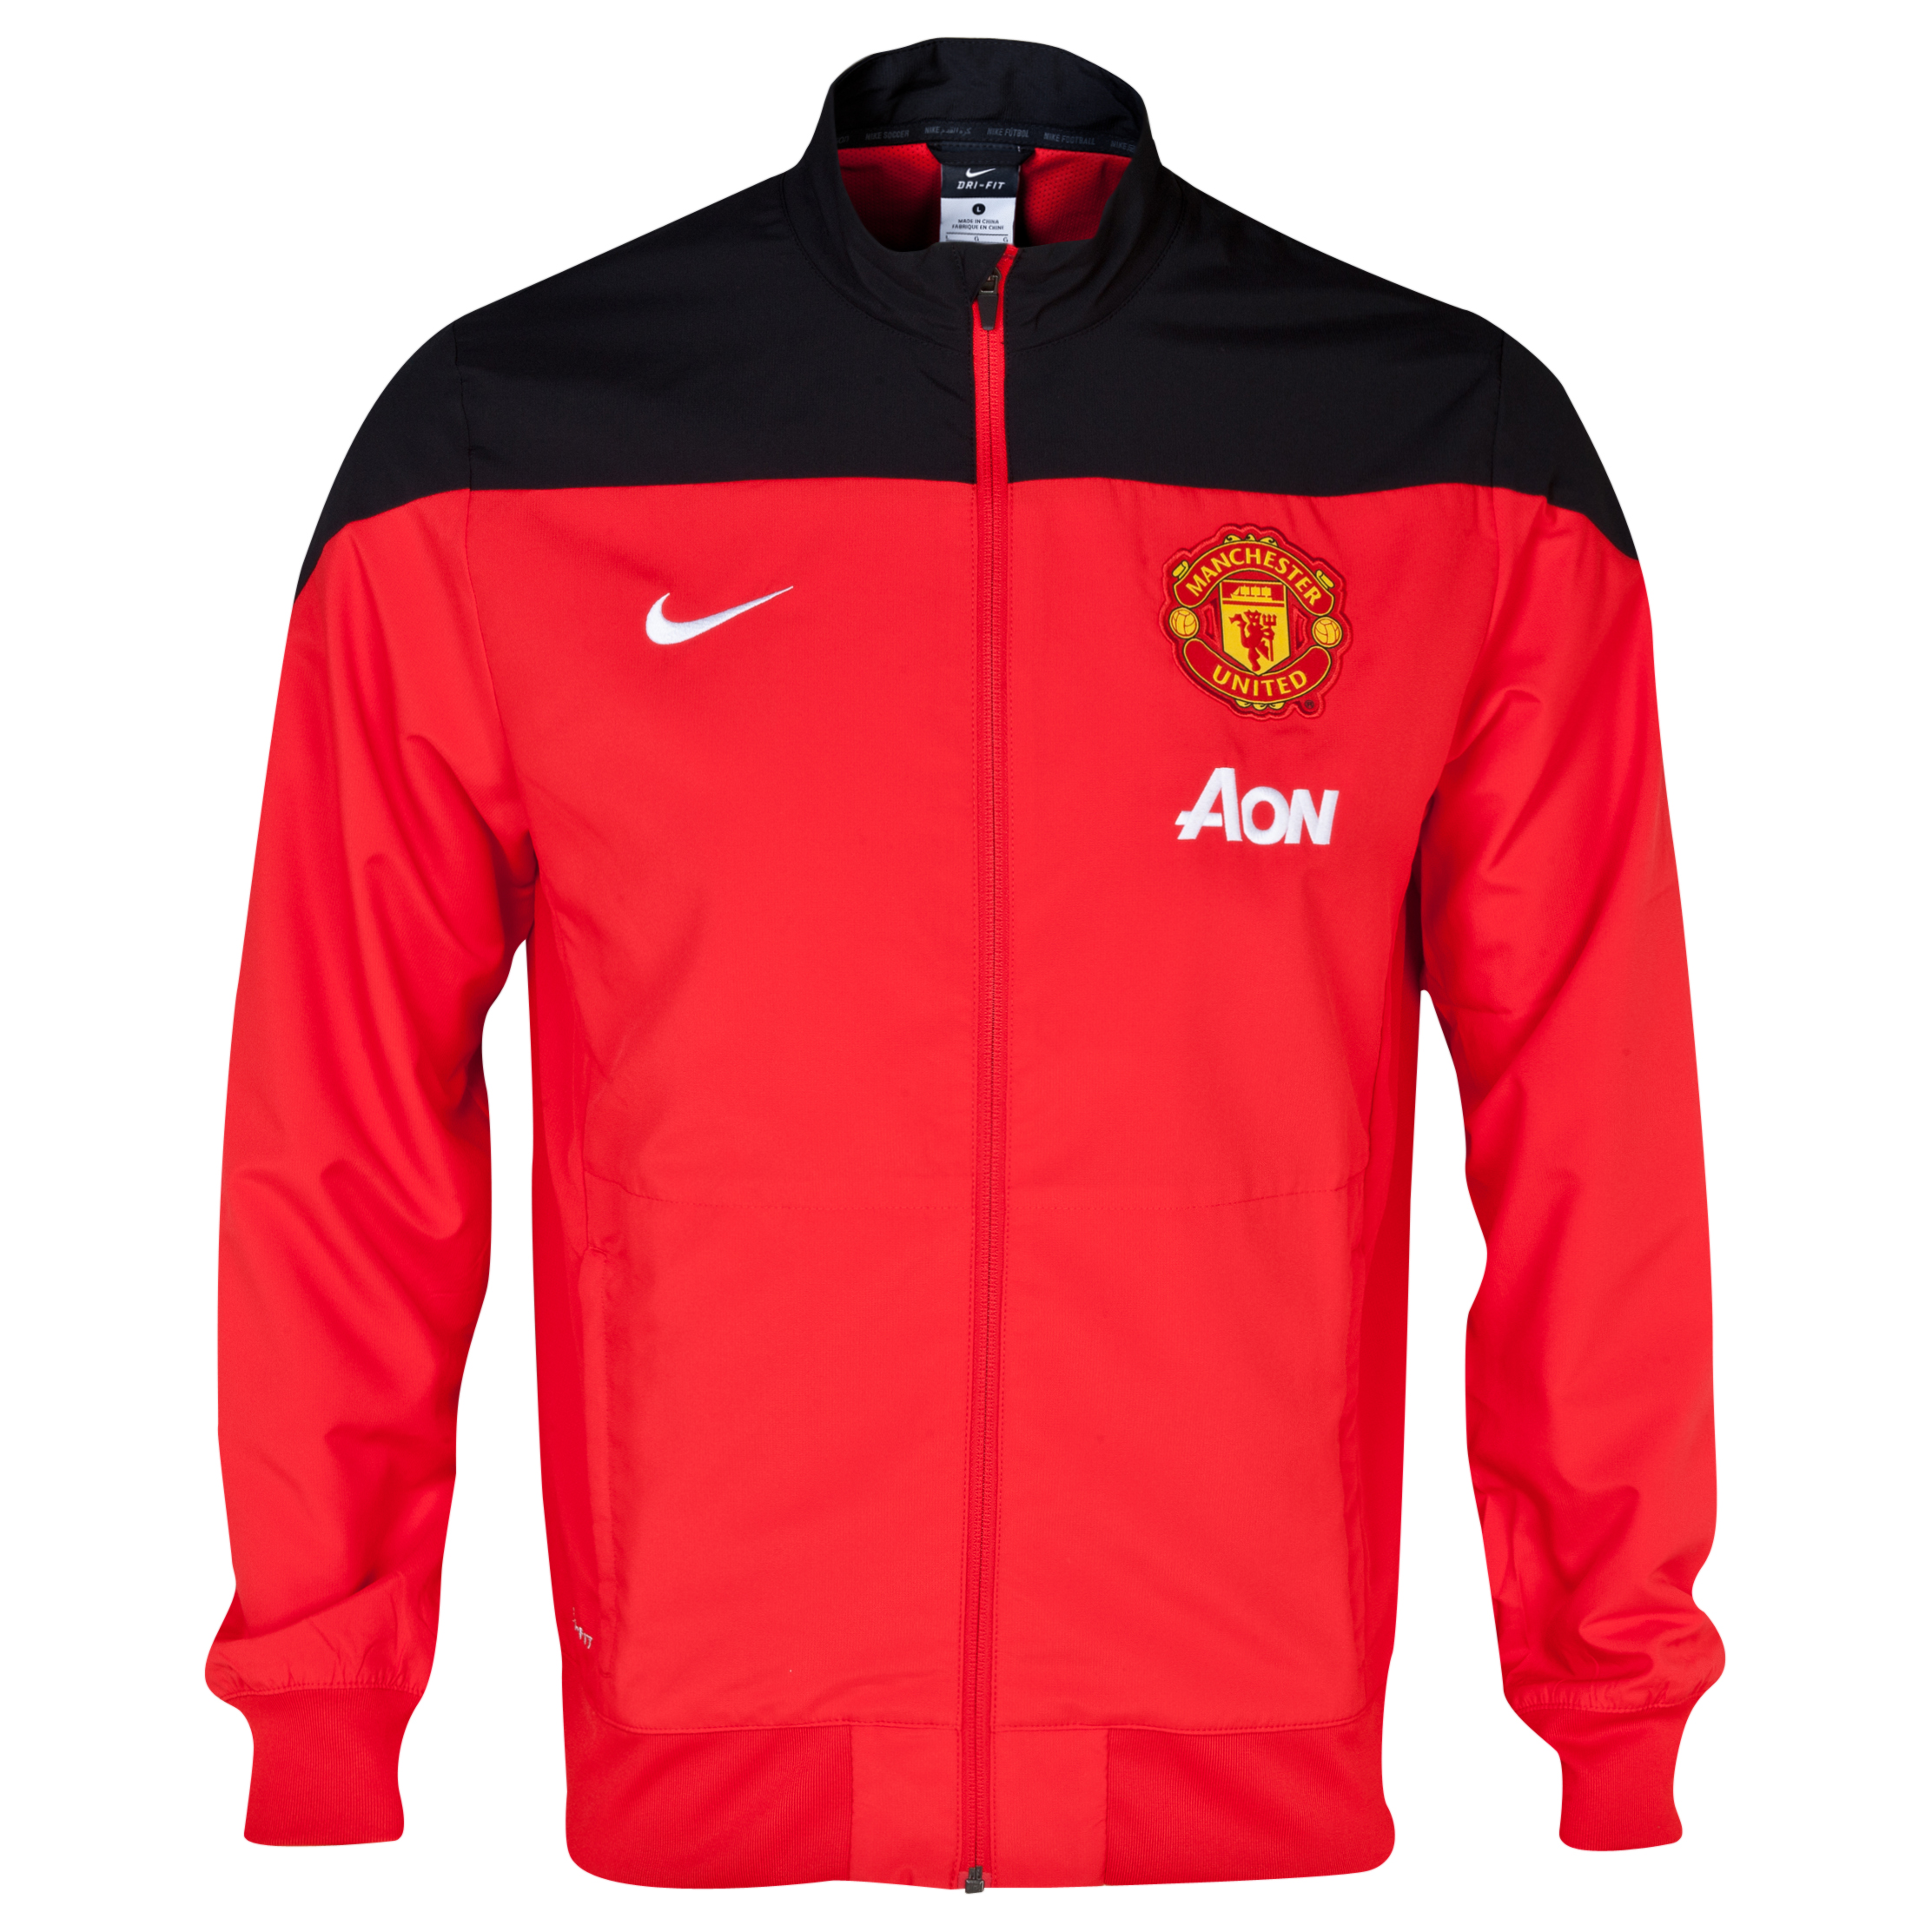 Manchester United Squad Sideline Woven Jacket - Challenge Red/Black/White Red